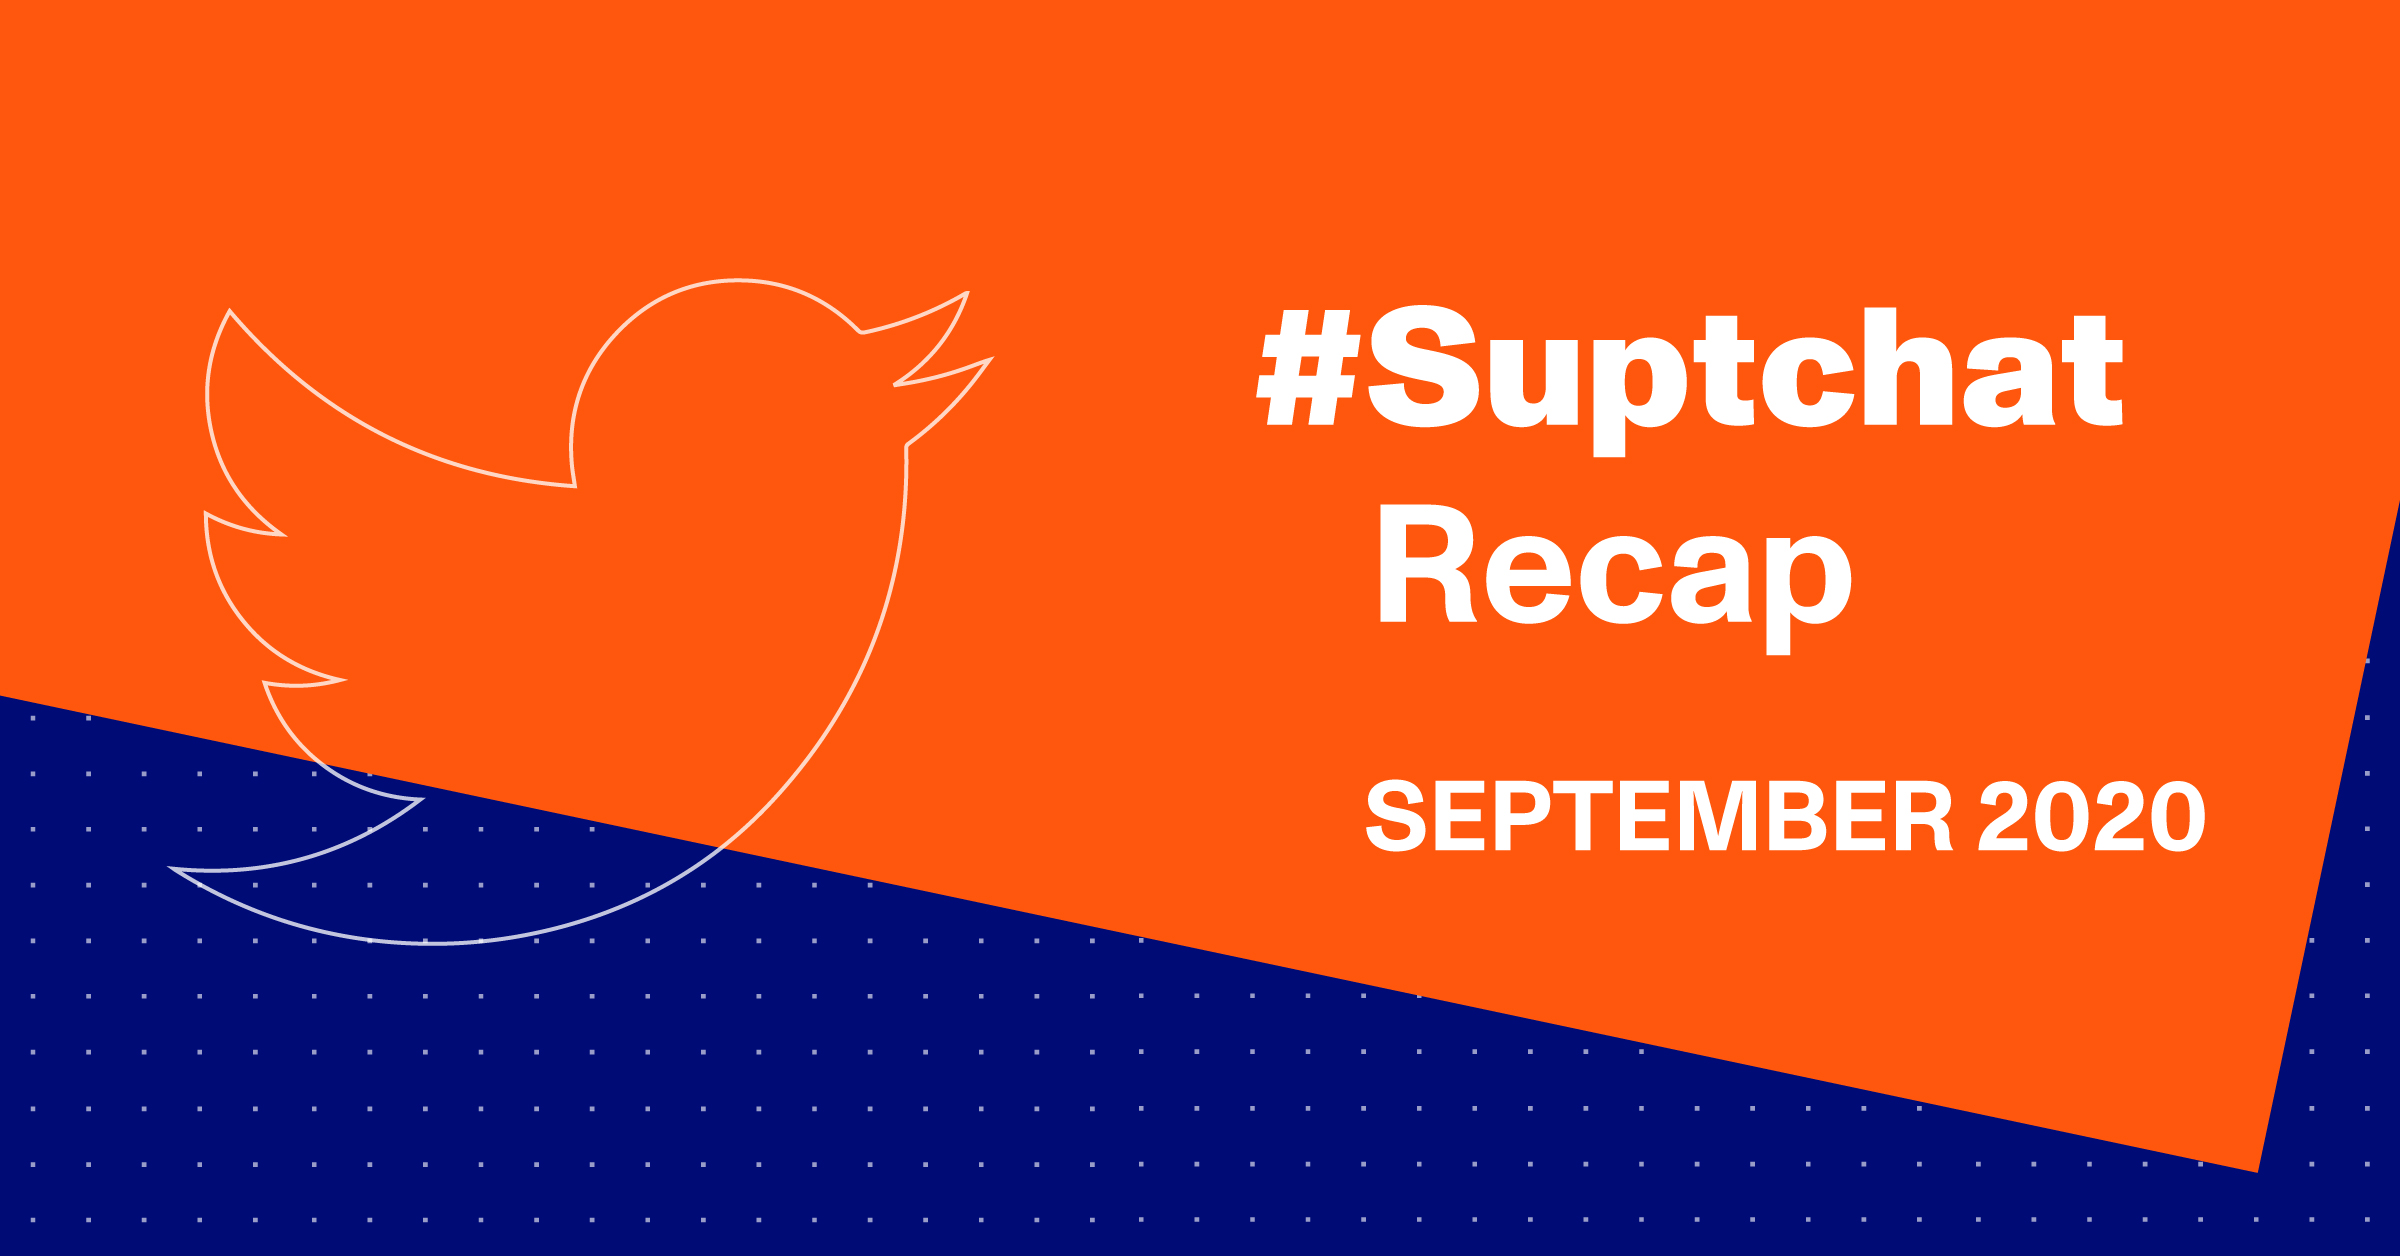 Thumbnail of #Suptchat Recap from September 2020